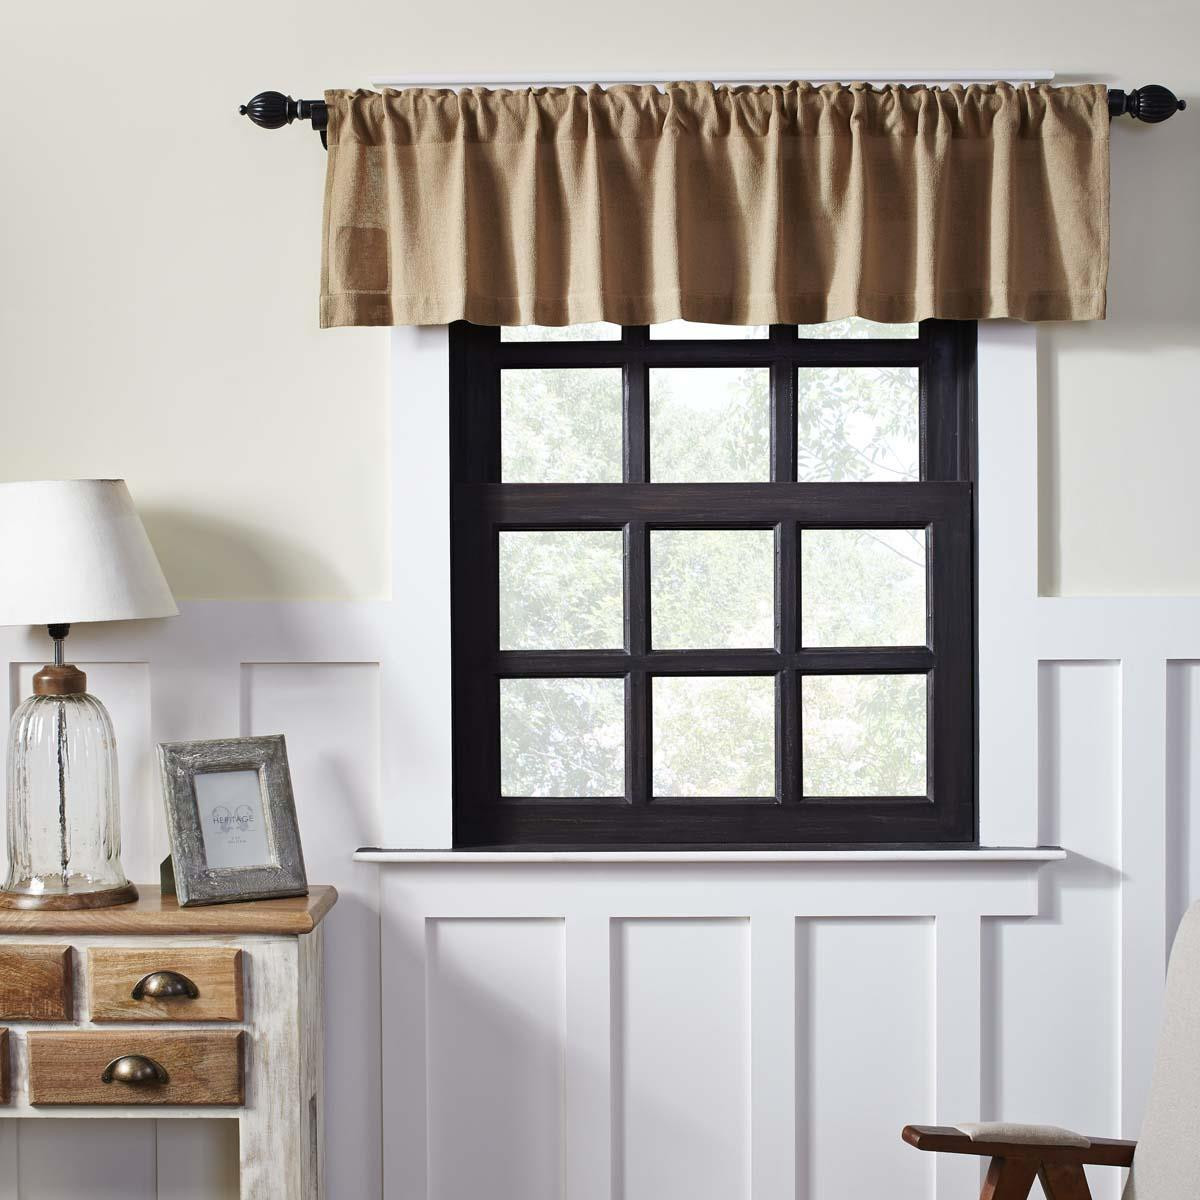 Vhc Brands Burlap Valance By April Olive Paul S Home Fashions